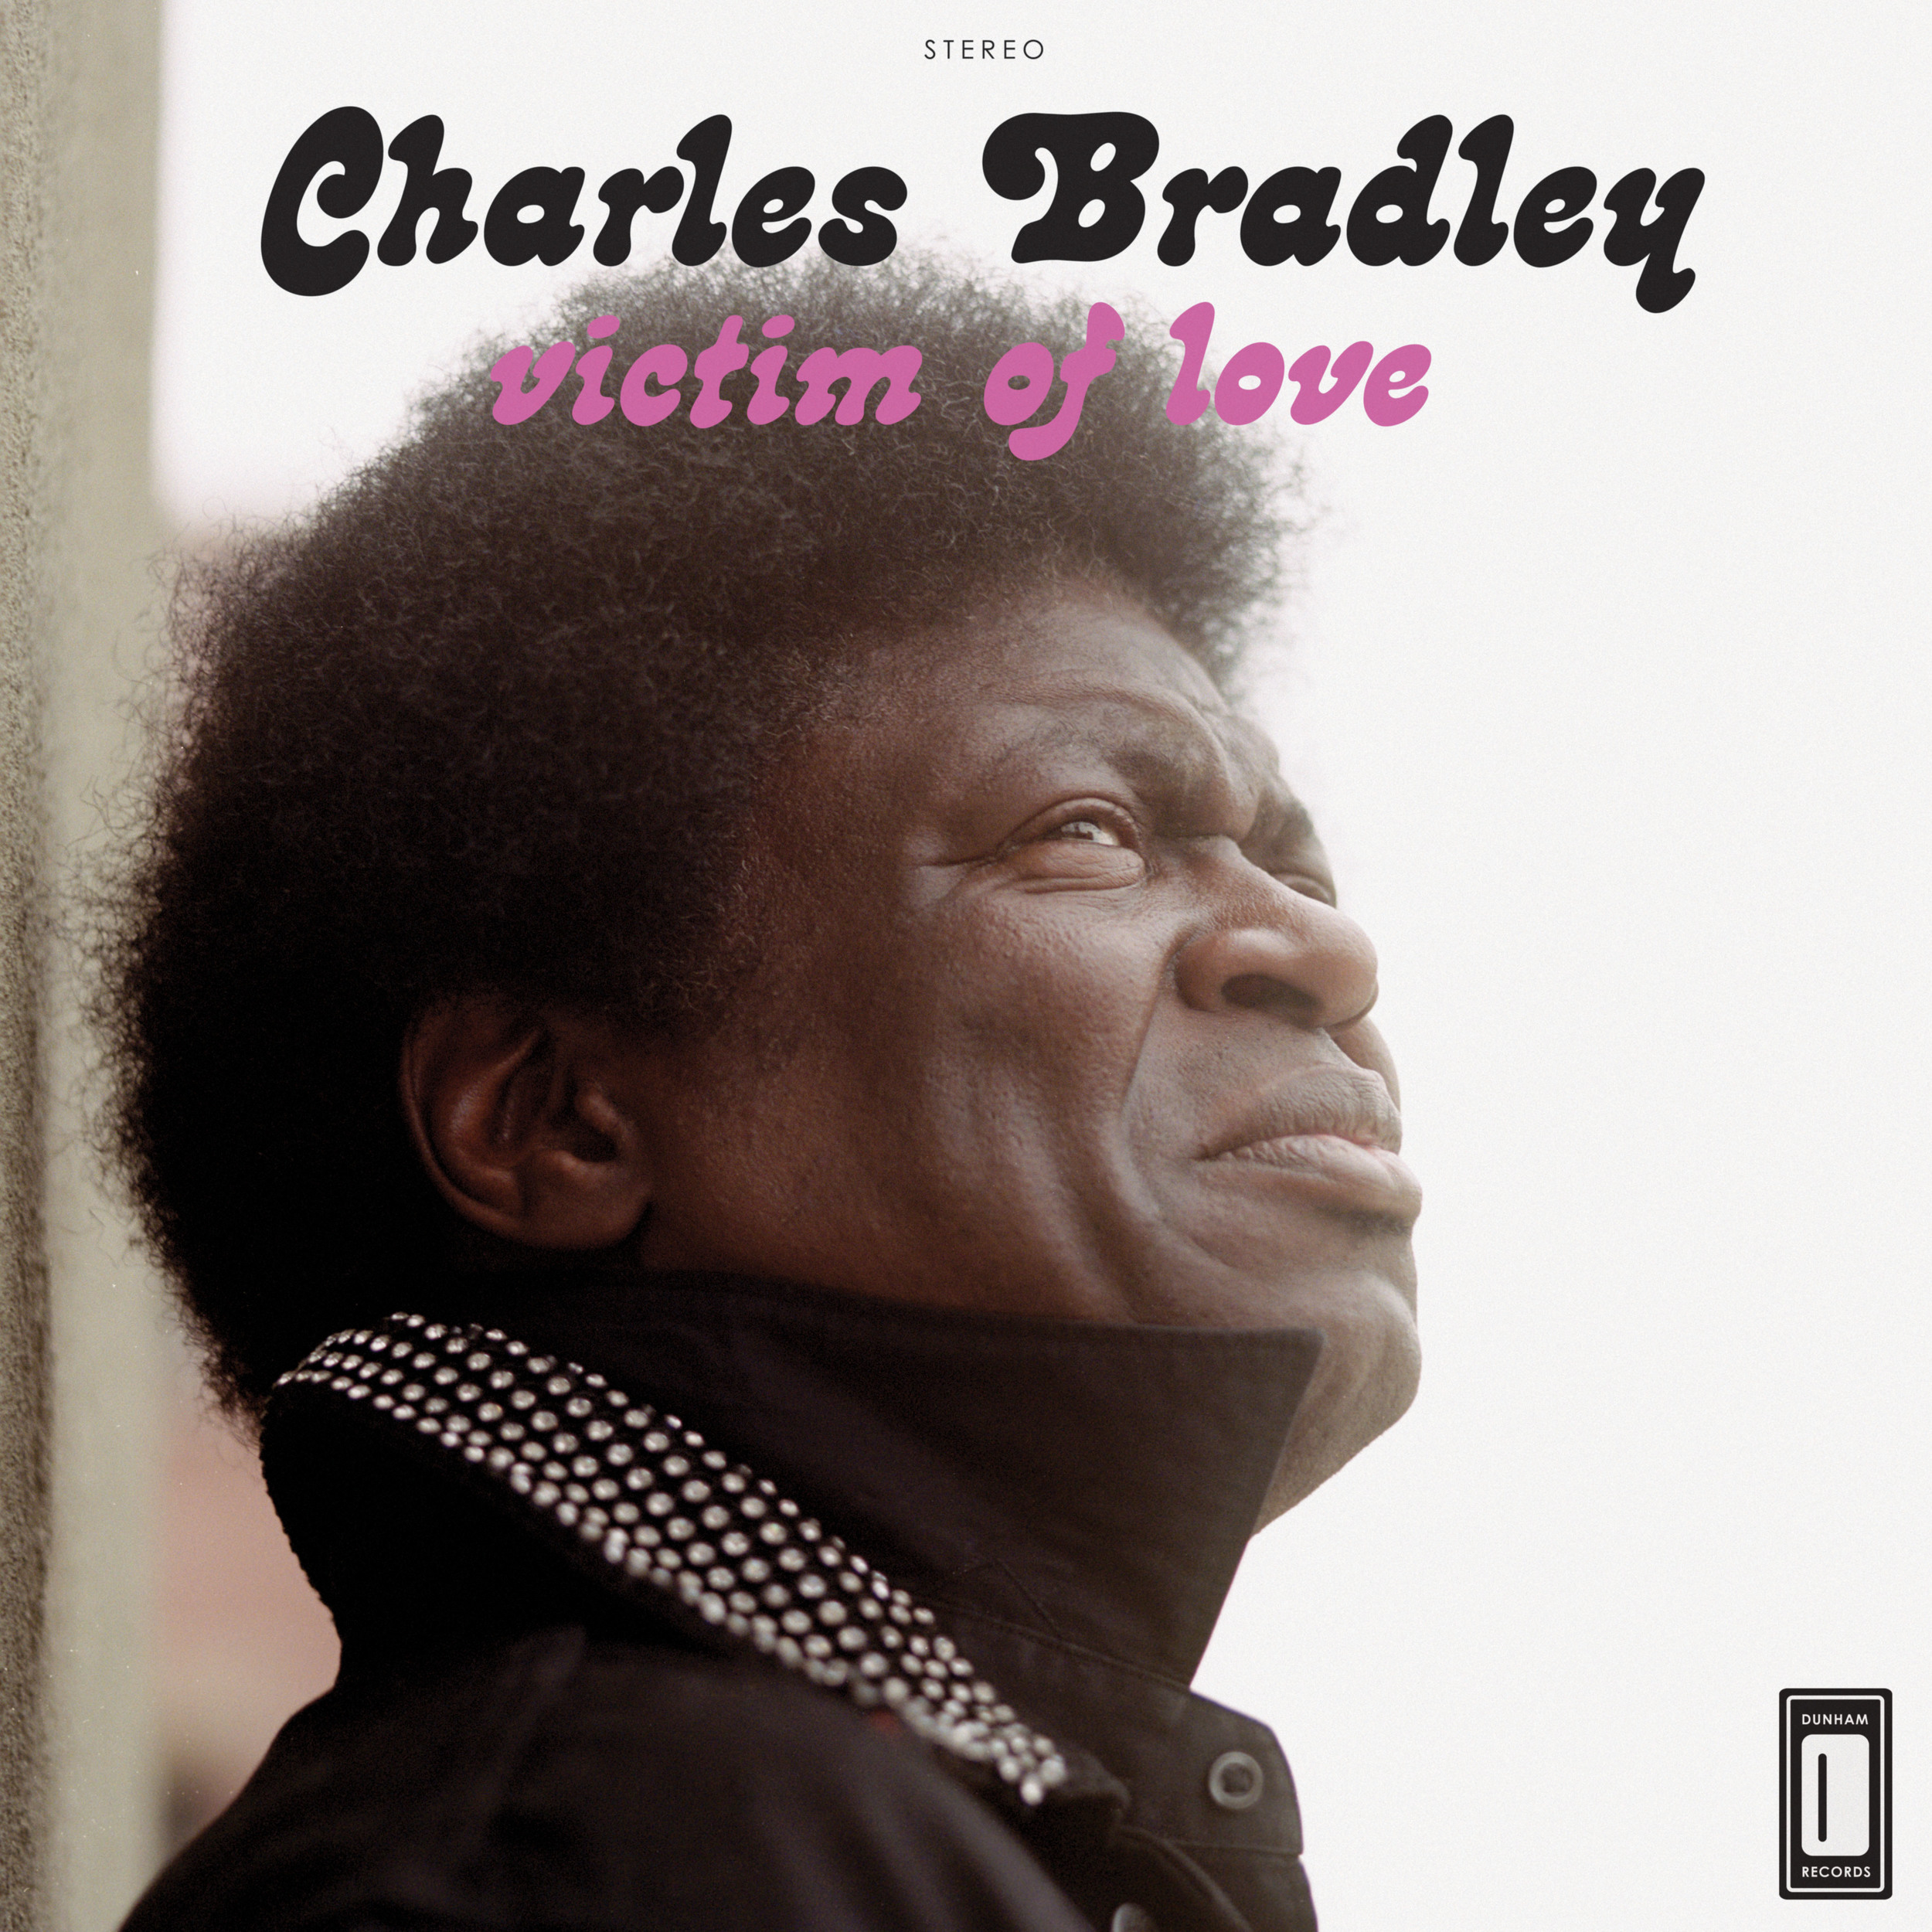 Charles Bradley is THE MAN  Everyone's choice of... ever.